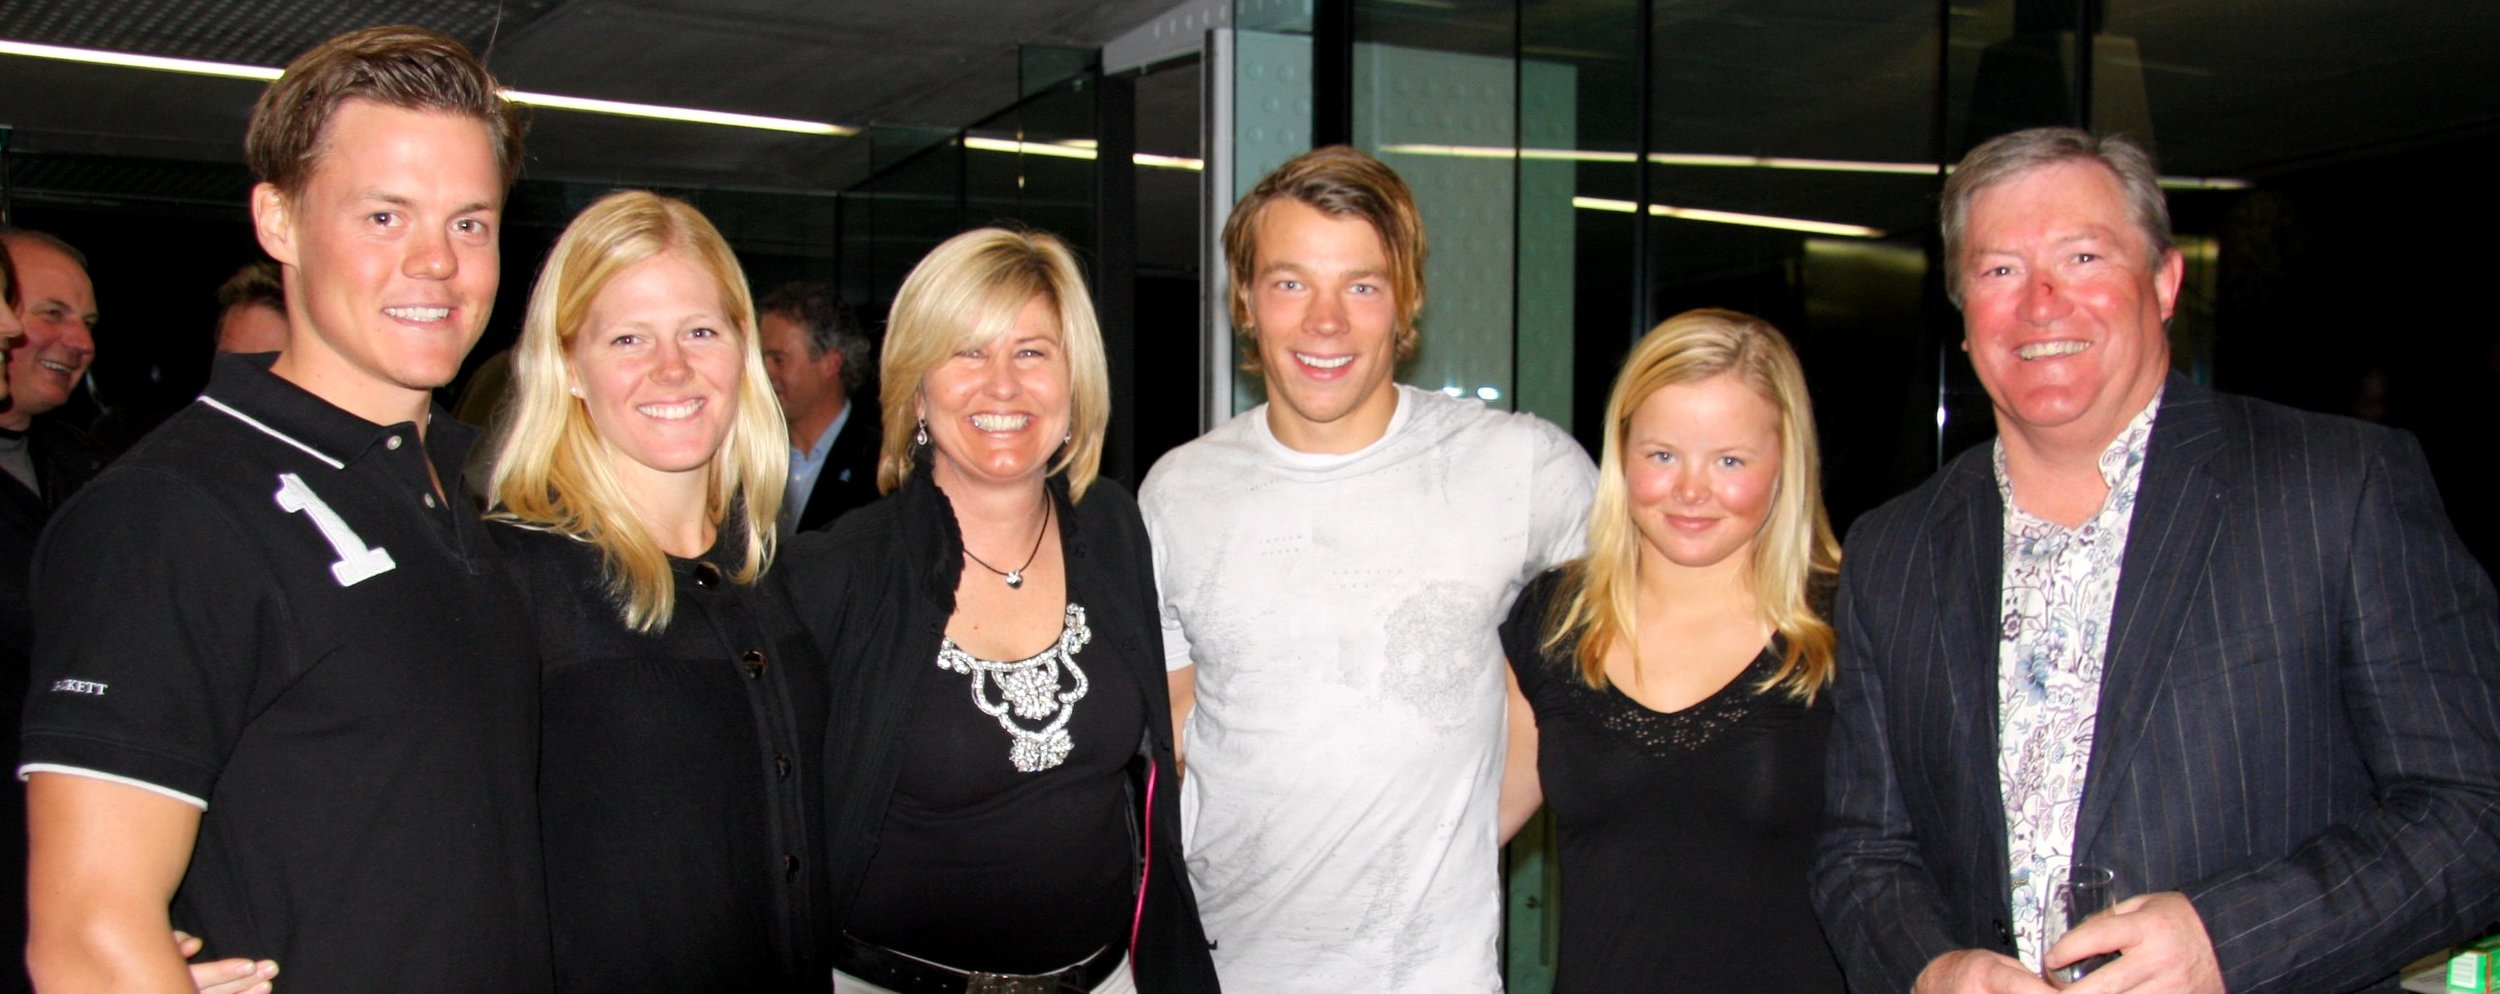 Snowvision event to raise funds for the New National Ski Team. The Swedish Ski Team (pictured above with The Snowvision Foundation's Co-Founder and CEO Fiona Stevens) attended and donated an auction prize.